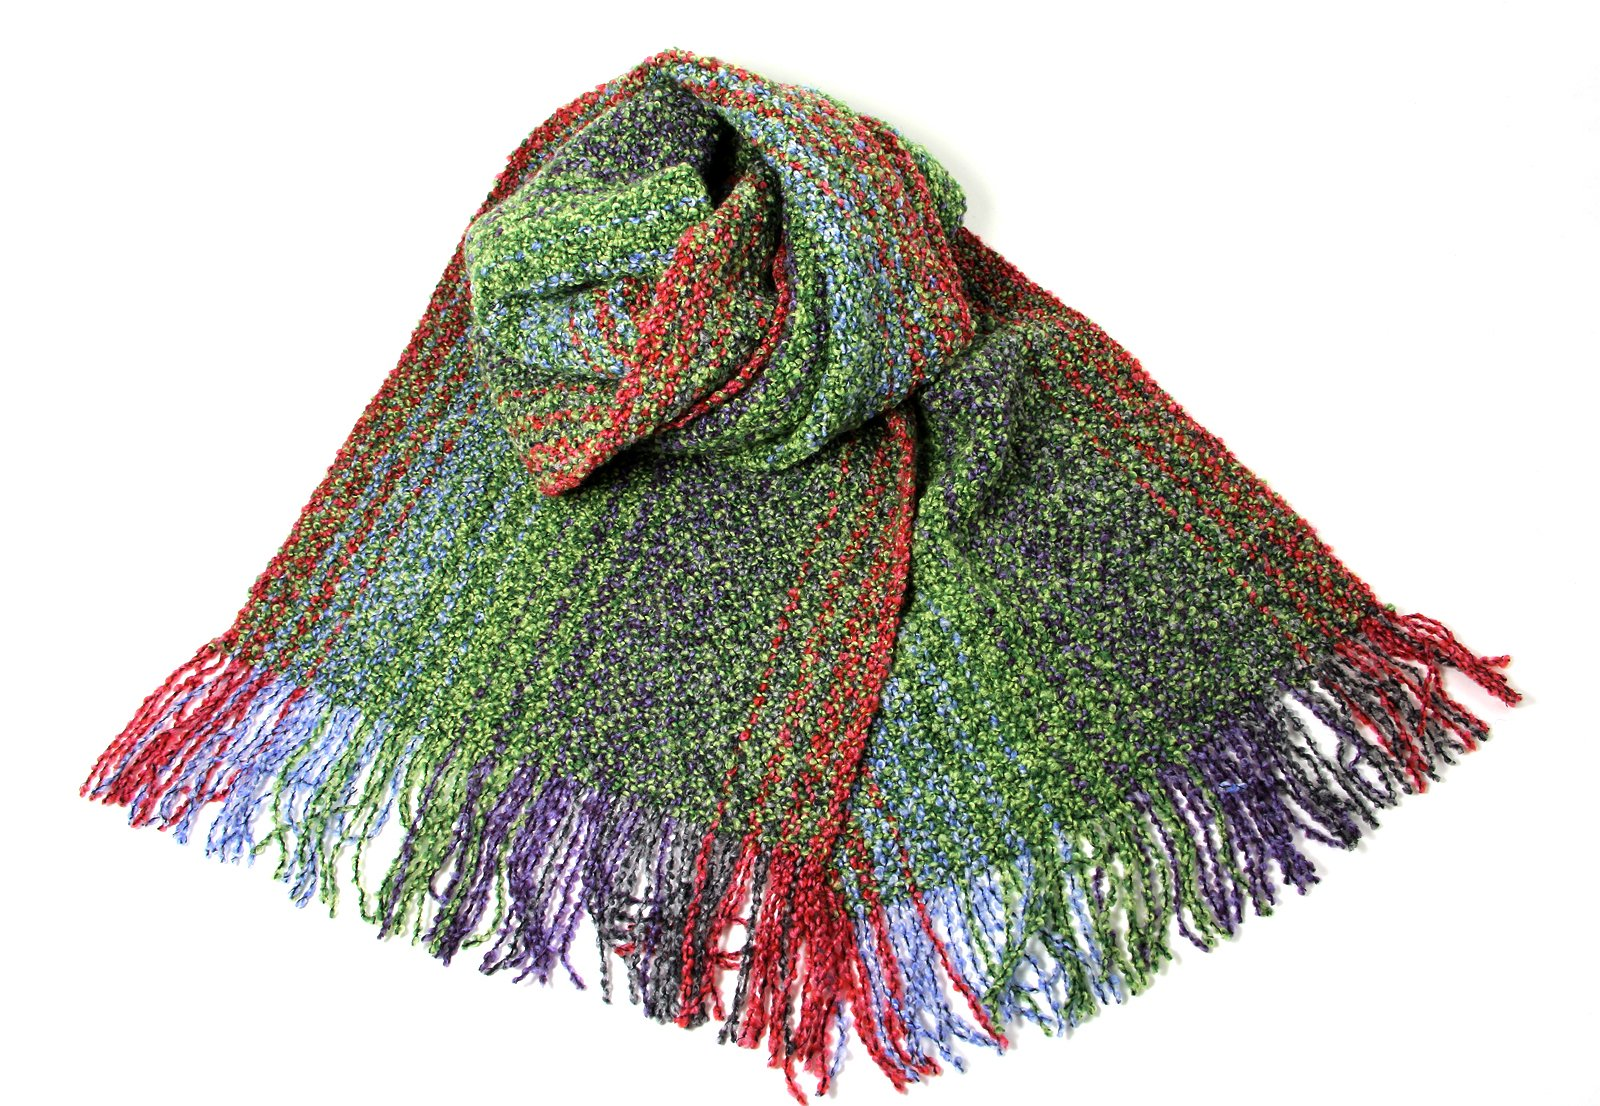 Biddy Murphy Irish Scarf Merino Wool and Cashmere Blend 62 Inches Long by 9 Inches Wide Green Made in Ireland by Biddy Murphy